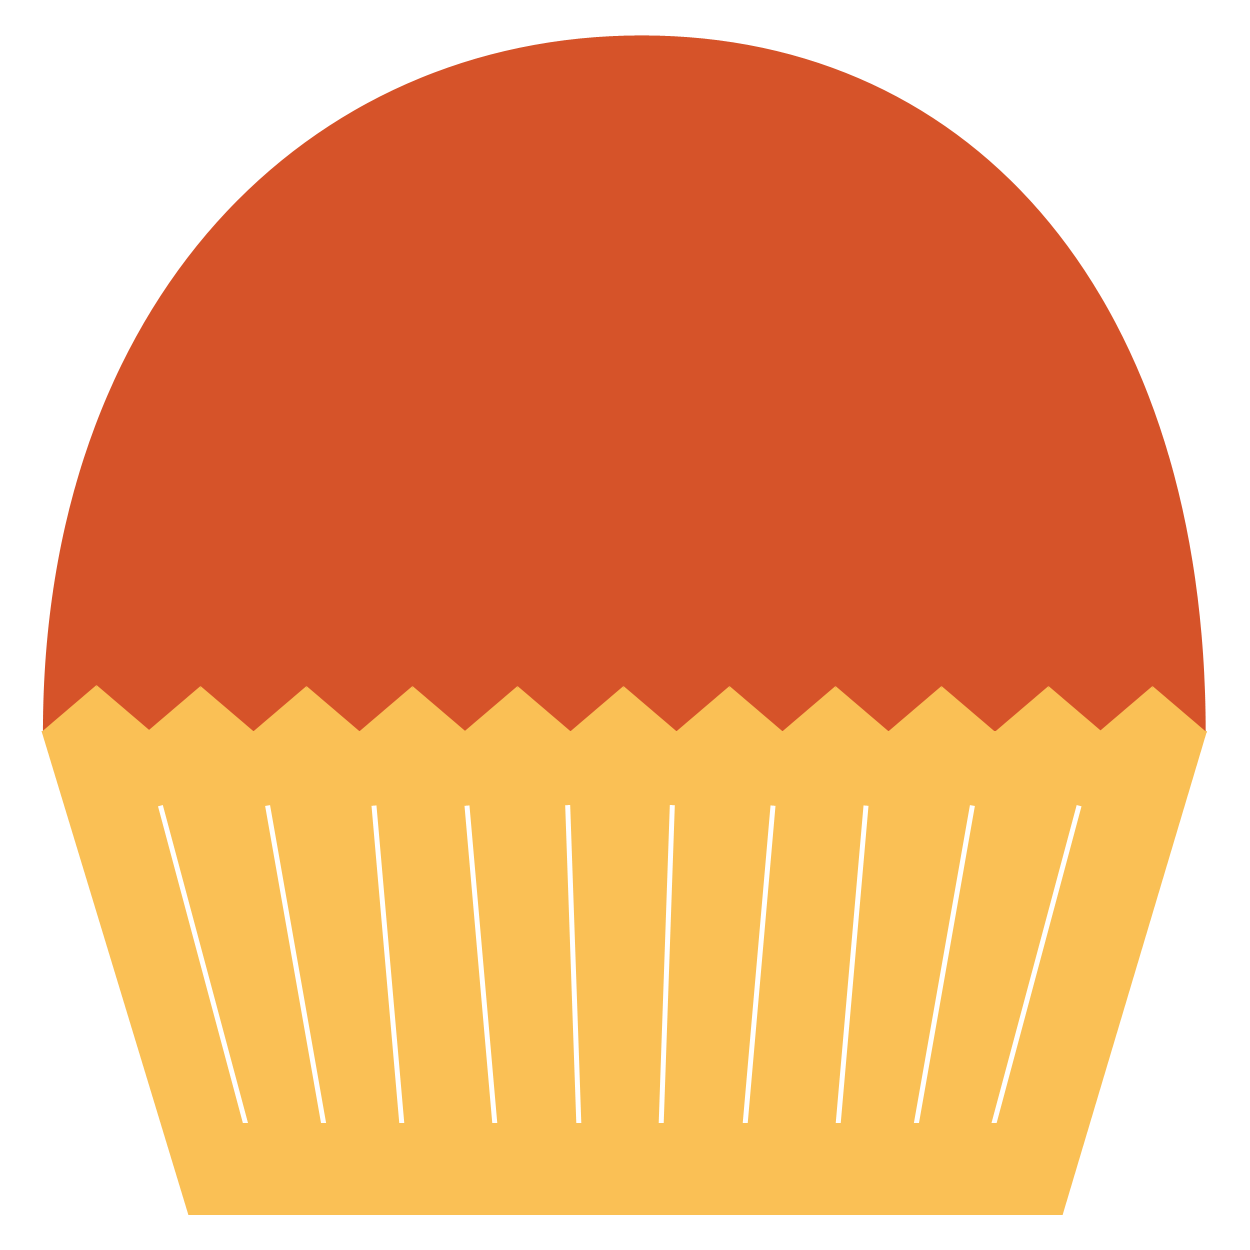 Turkey cupcake clipart image freeuse library Index of /wp-content/uploads/2012/11 image freeuse library